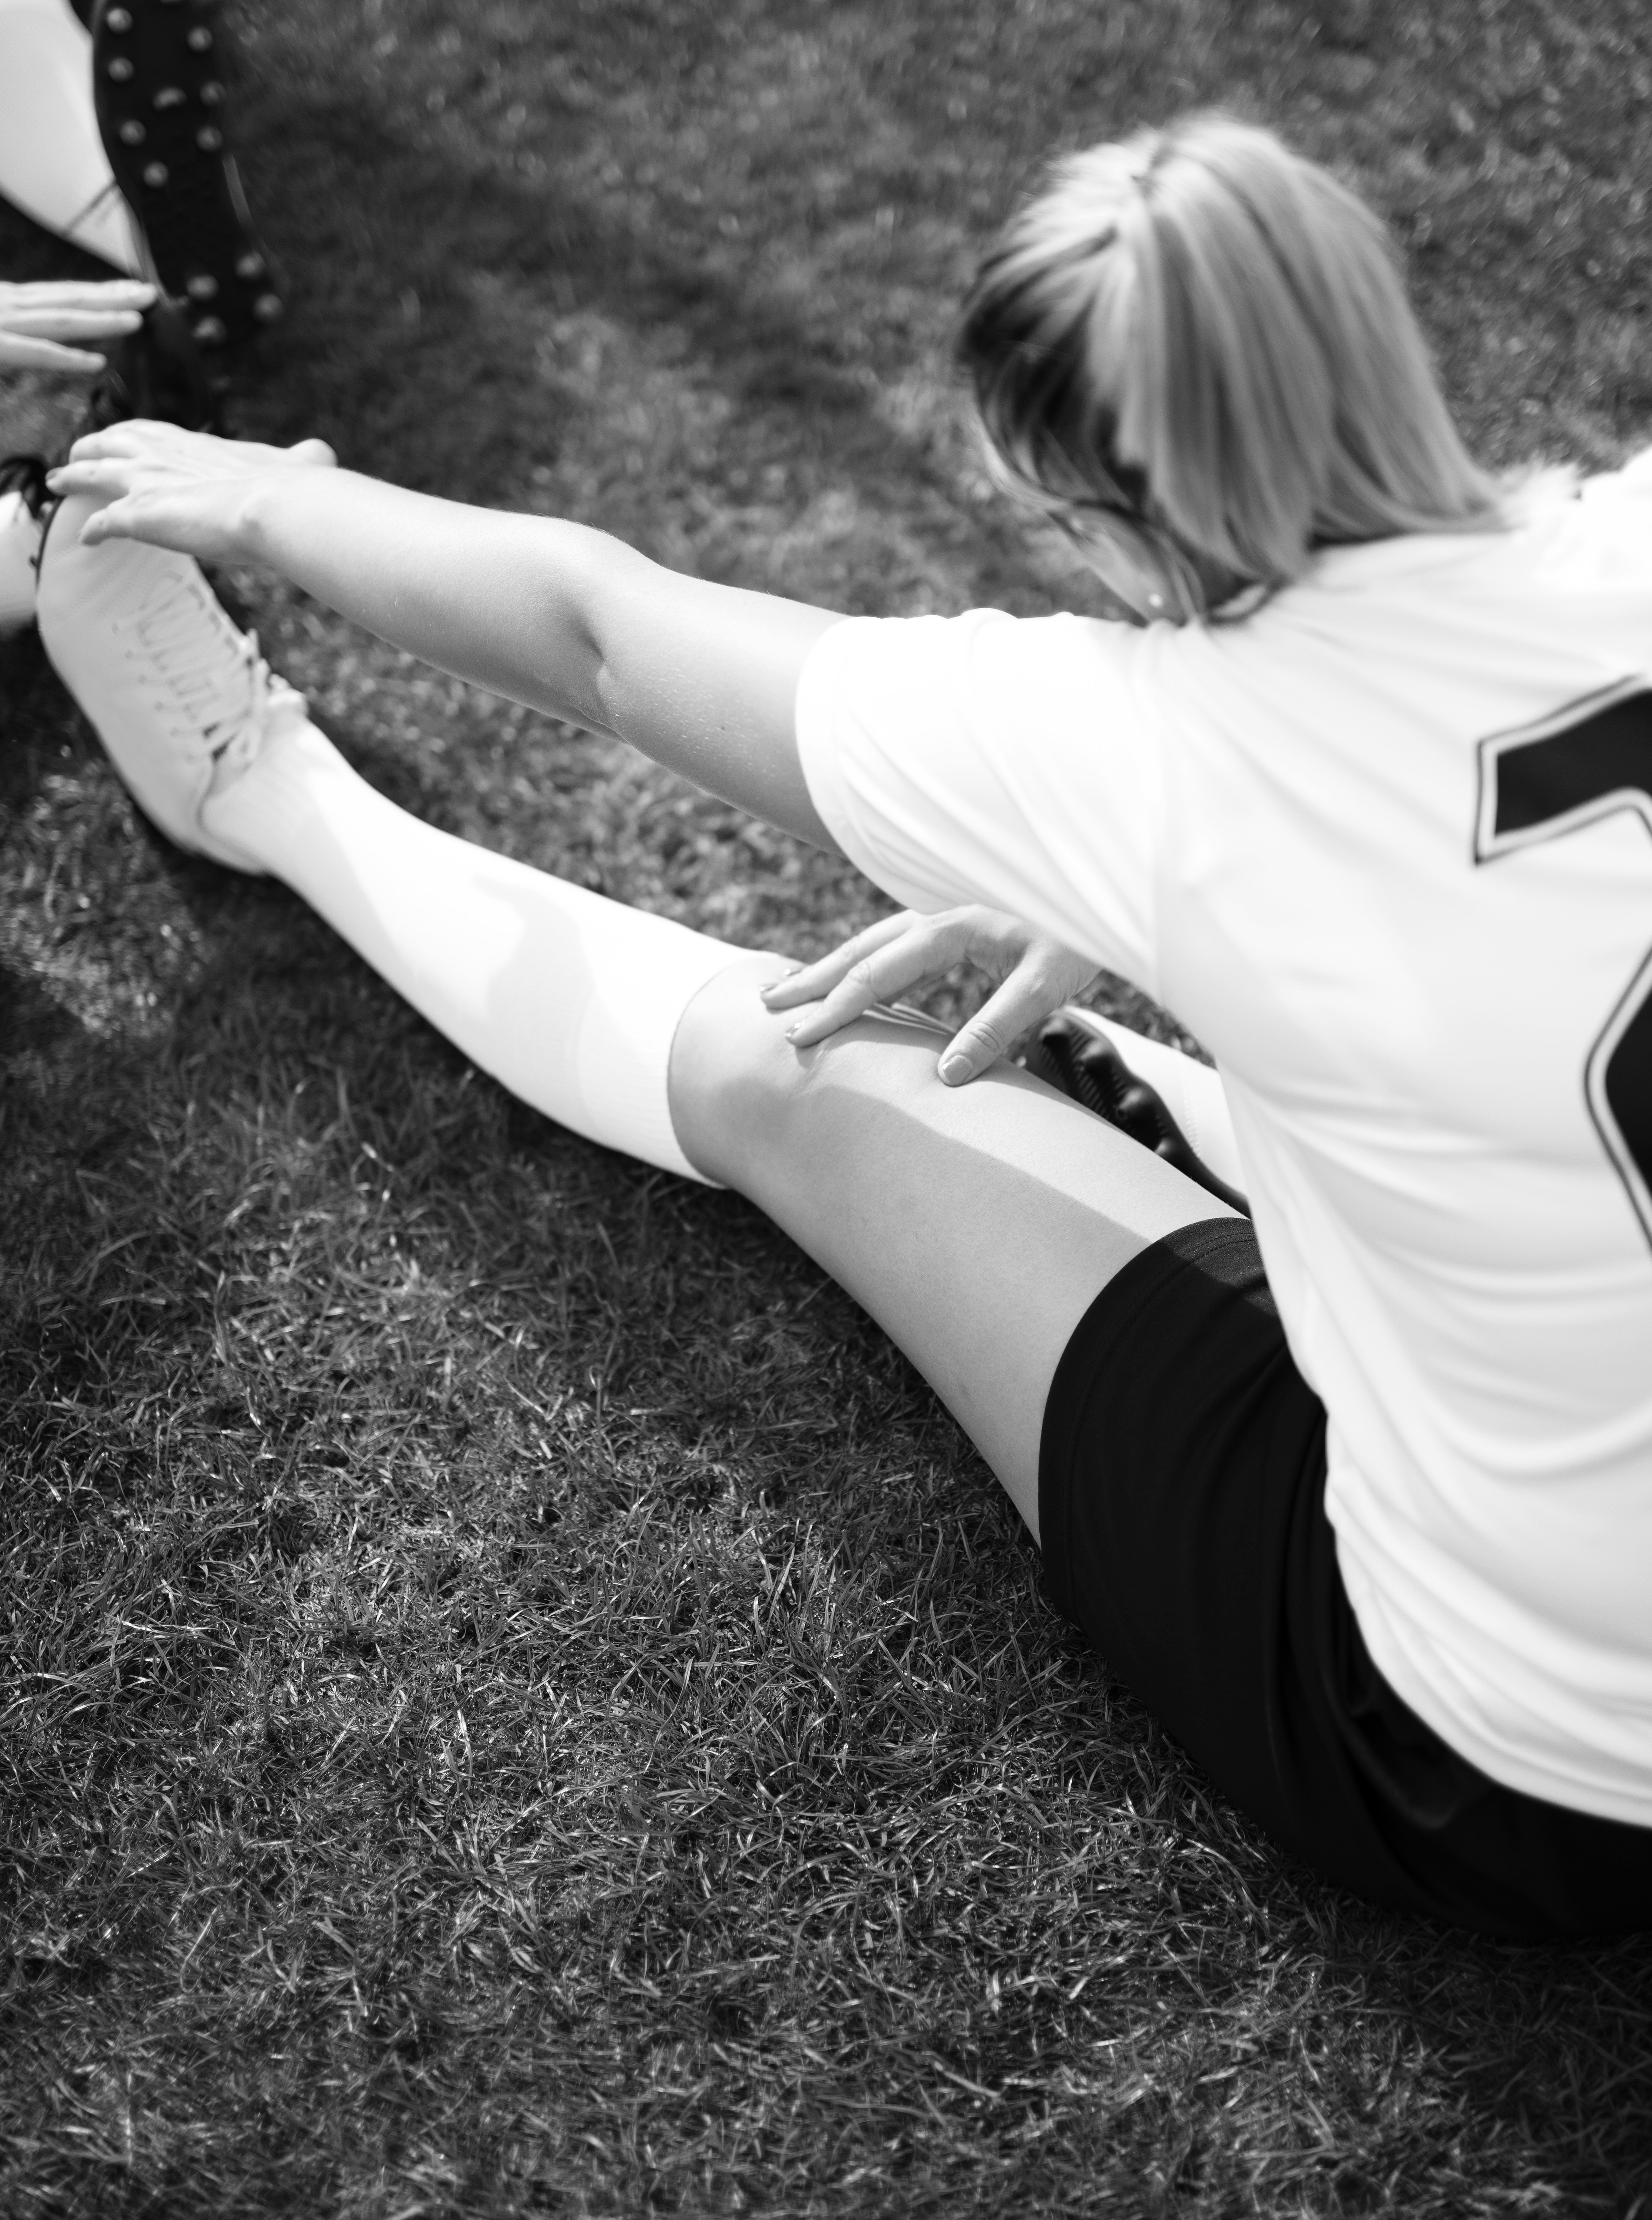 grayscale photography of woman sitting on grass reaching her left foot